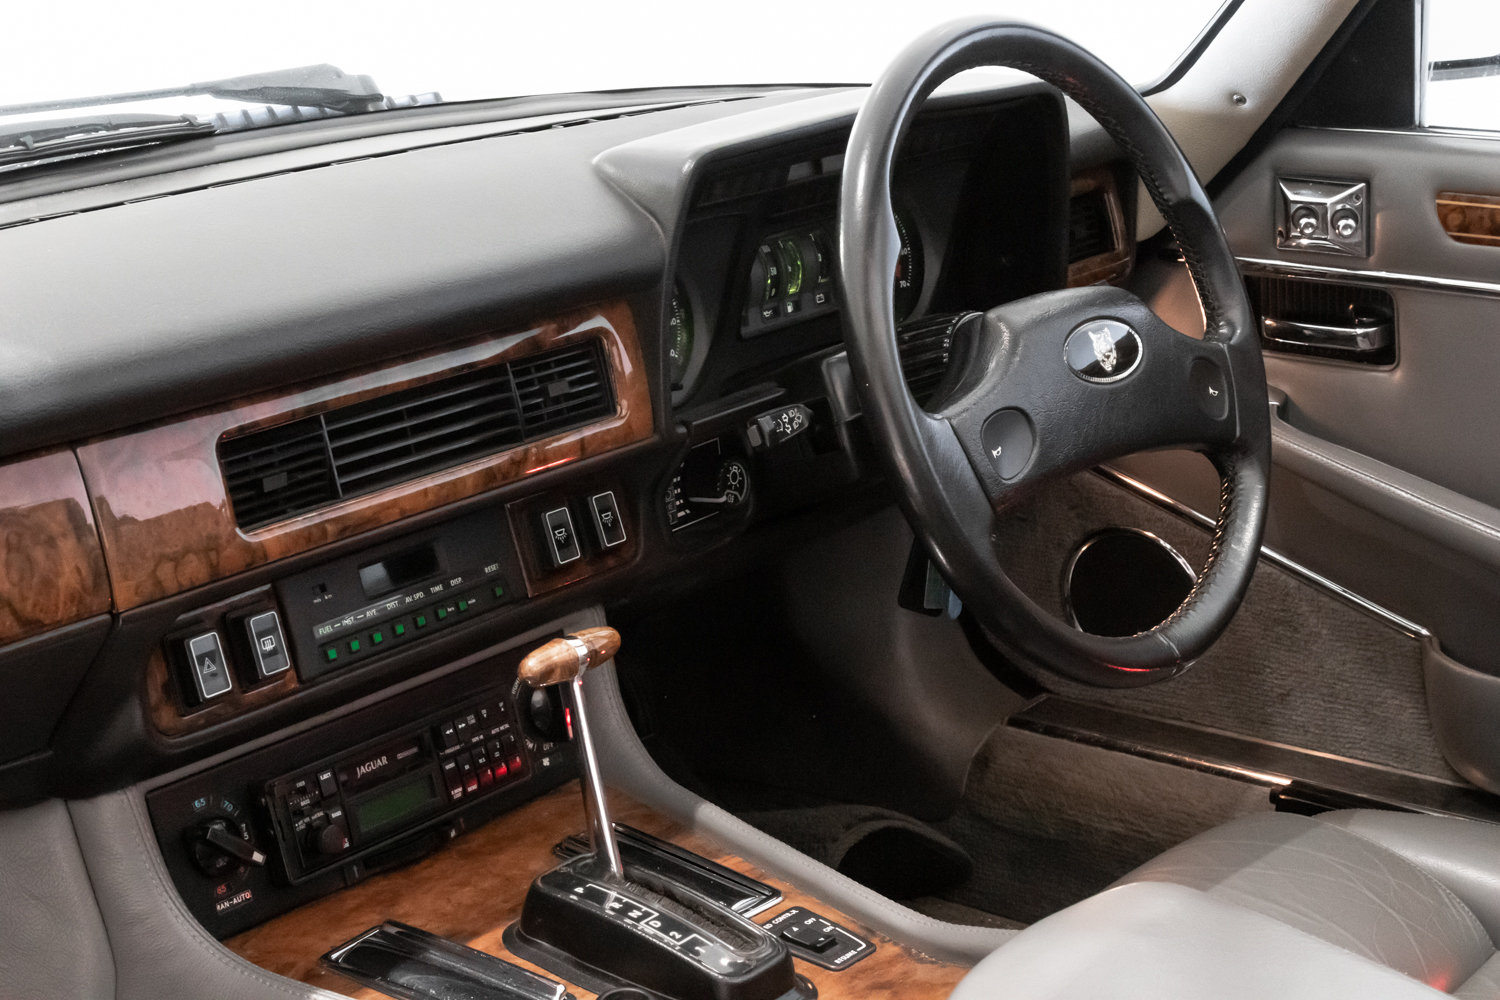 1989 Outstanding Condition Jaguar XJS V12 Convertible Automatic  For Sale (picture 6 of 6)